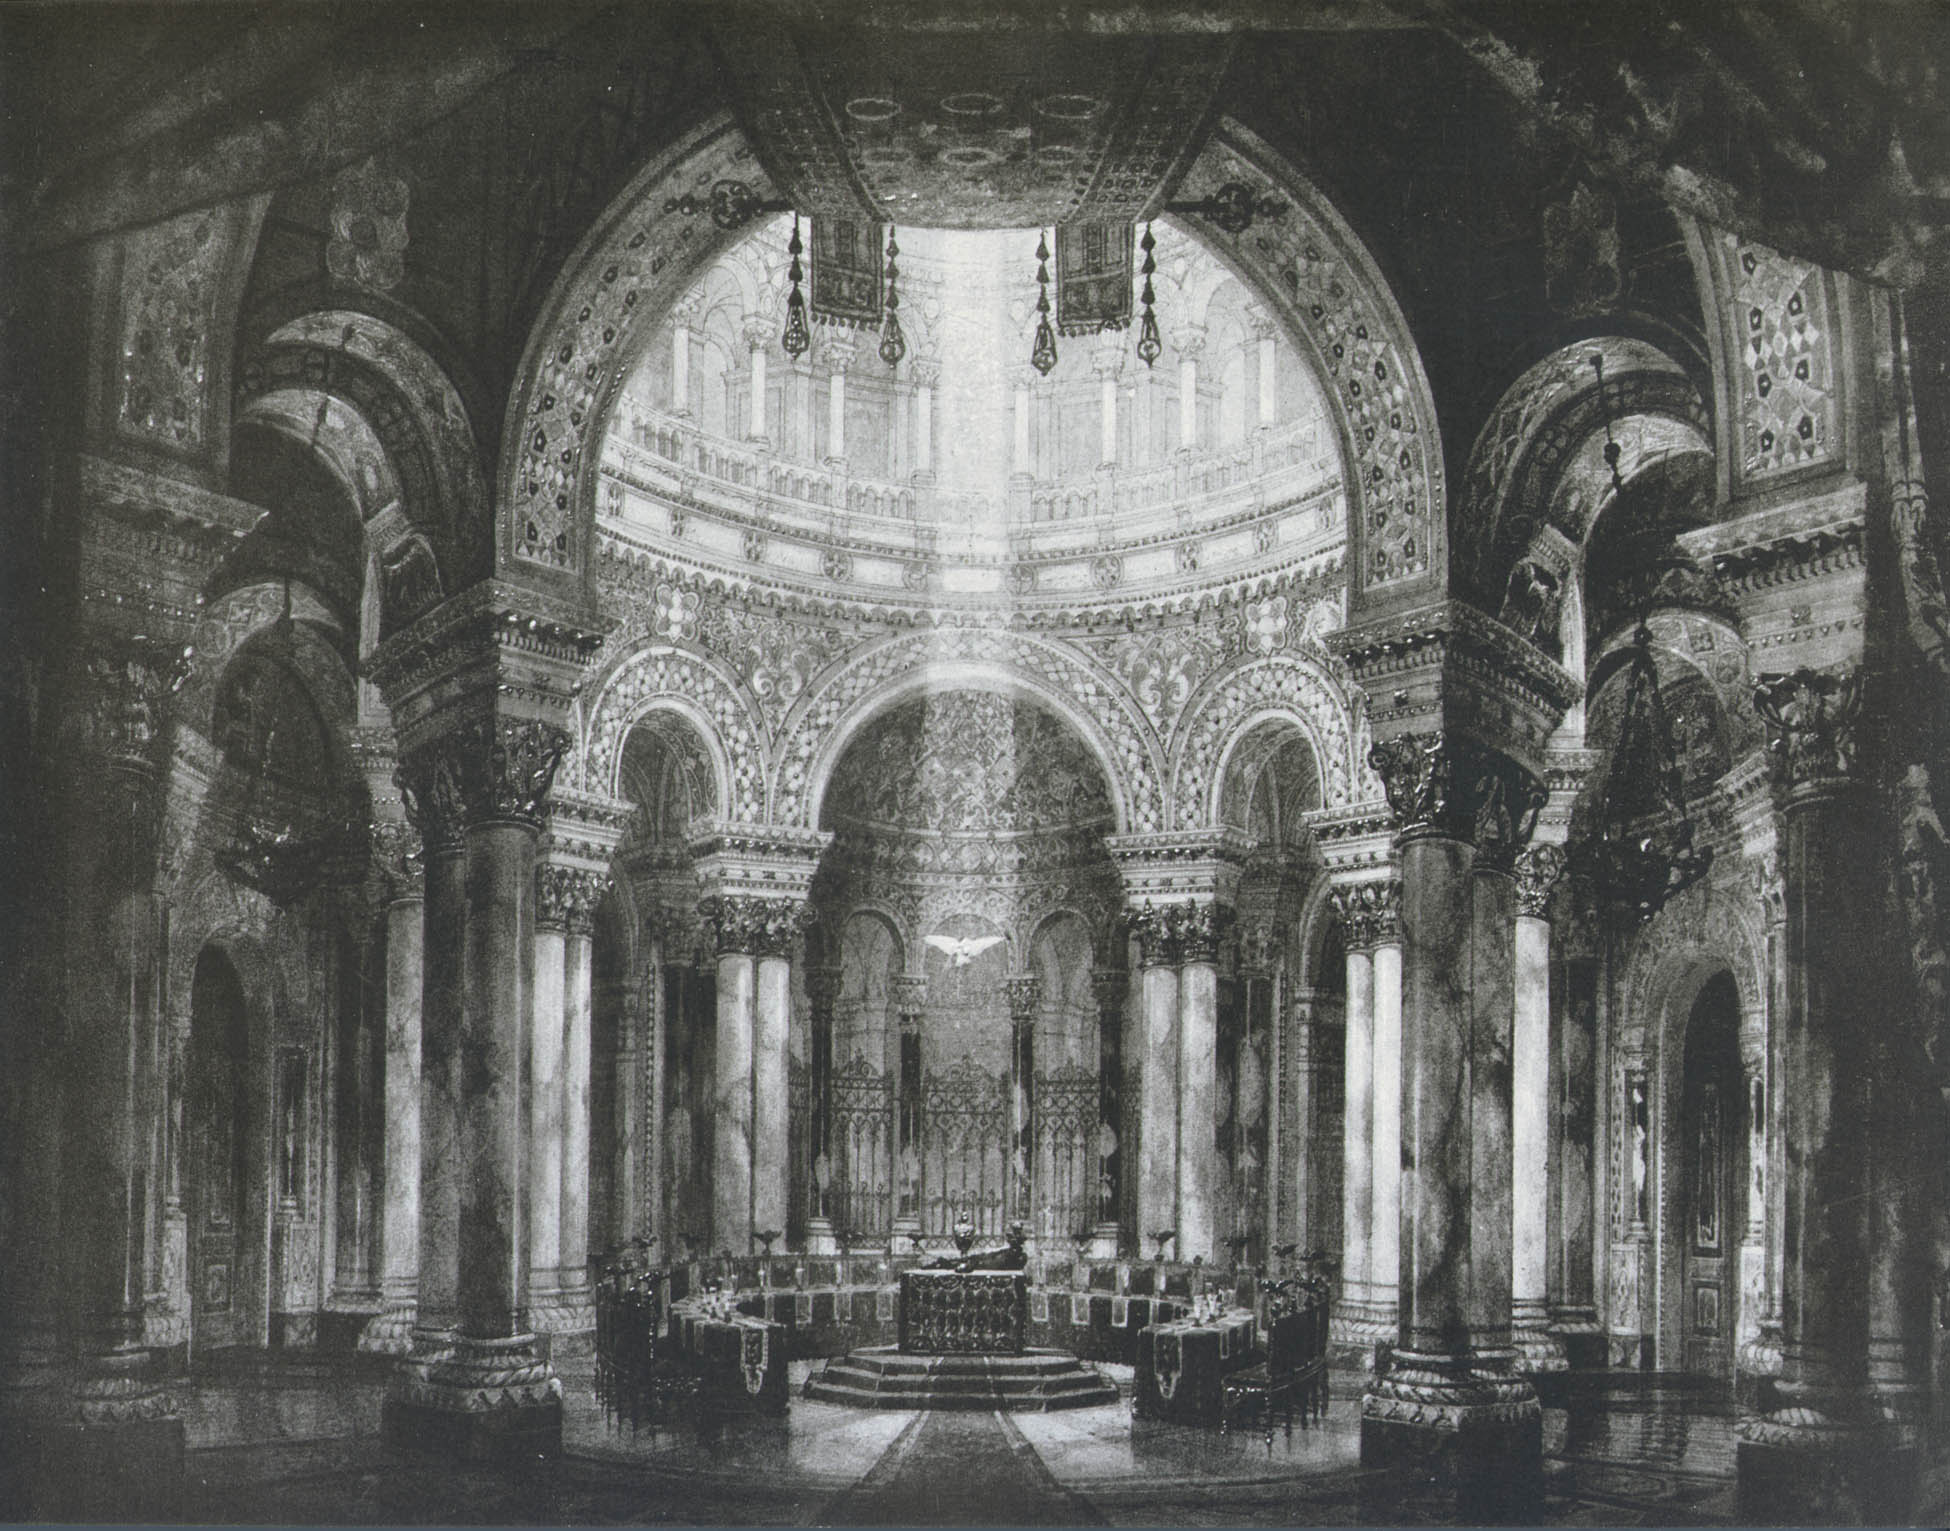 Temple of the Holy Grail, stage set by Paul von Joukowsky for the first Parsifal production at Bayreuth, 1882, Met Opera Archives